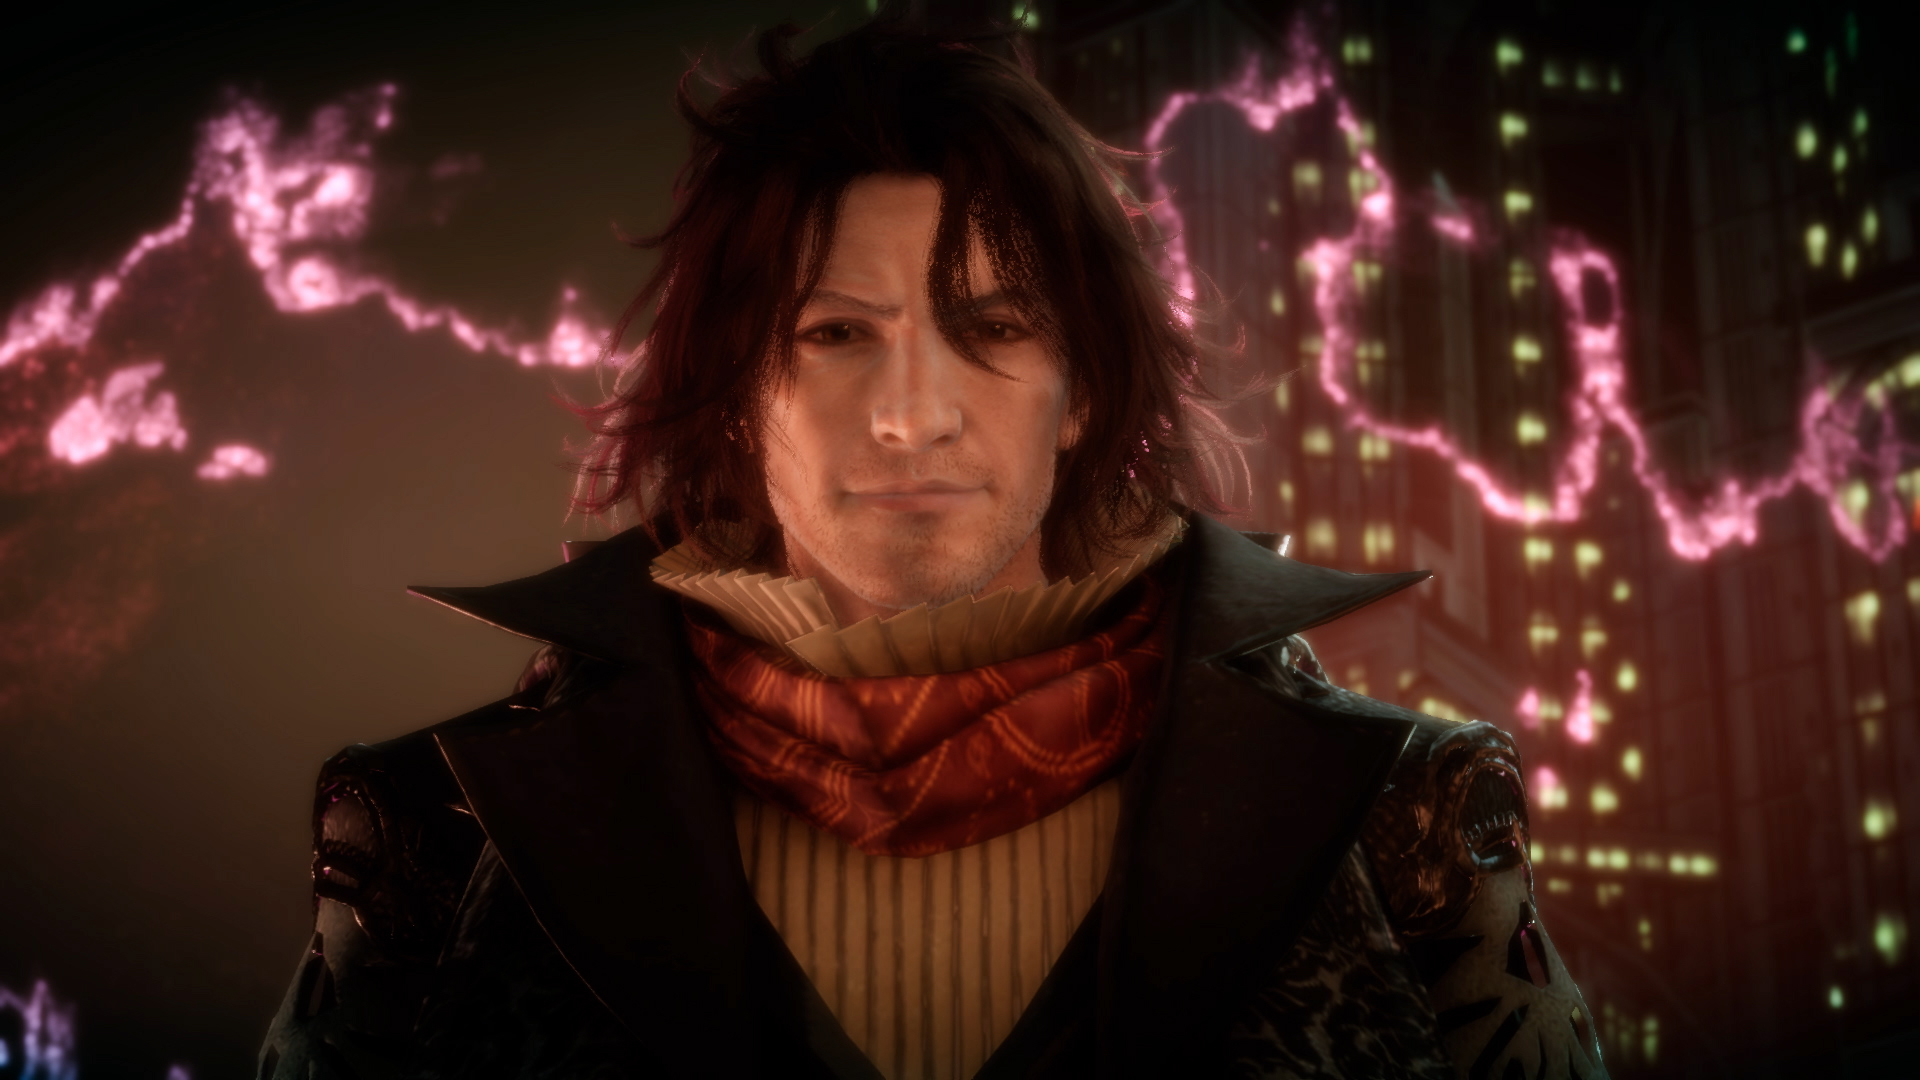 Final Fantasy 15 Episode Ardyn